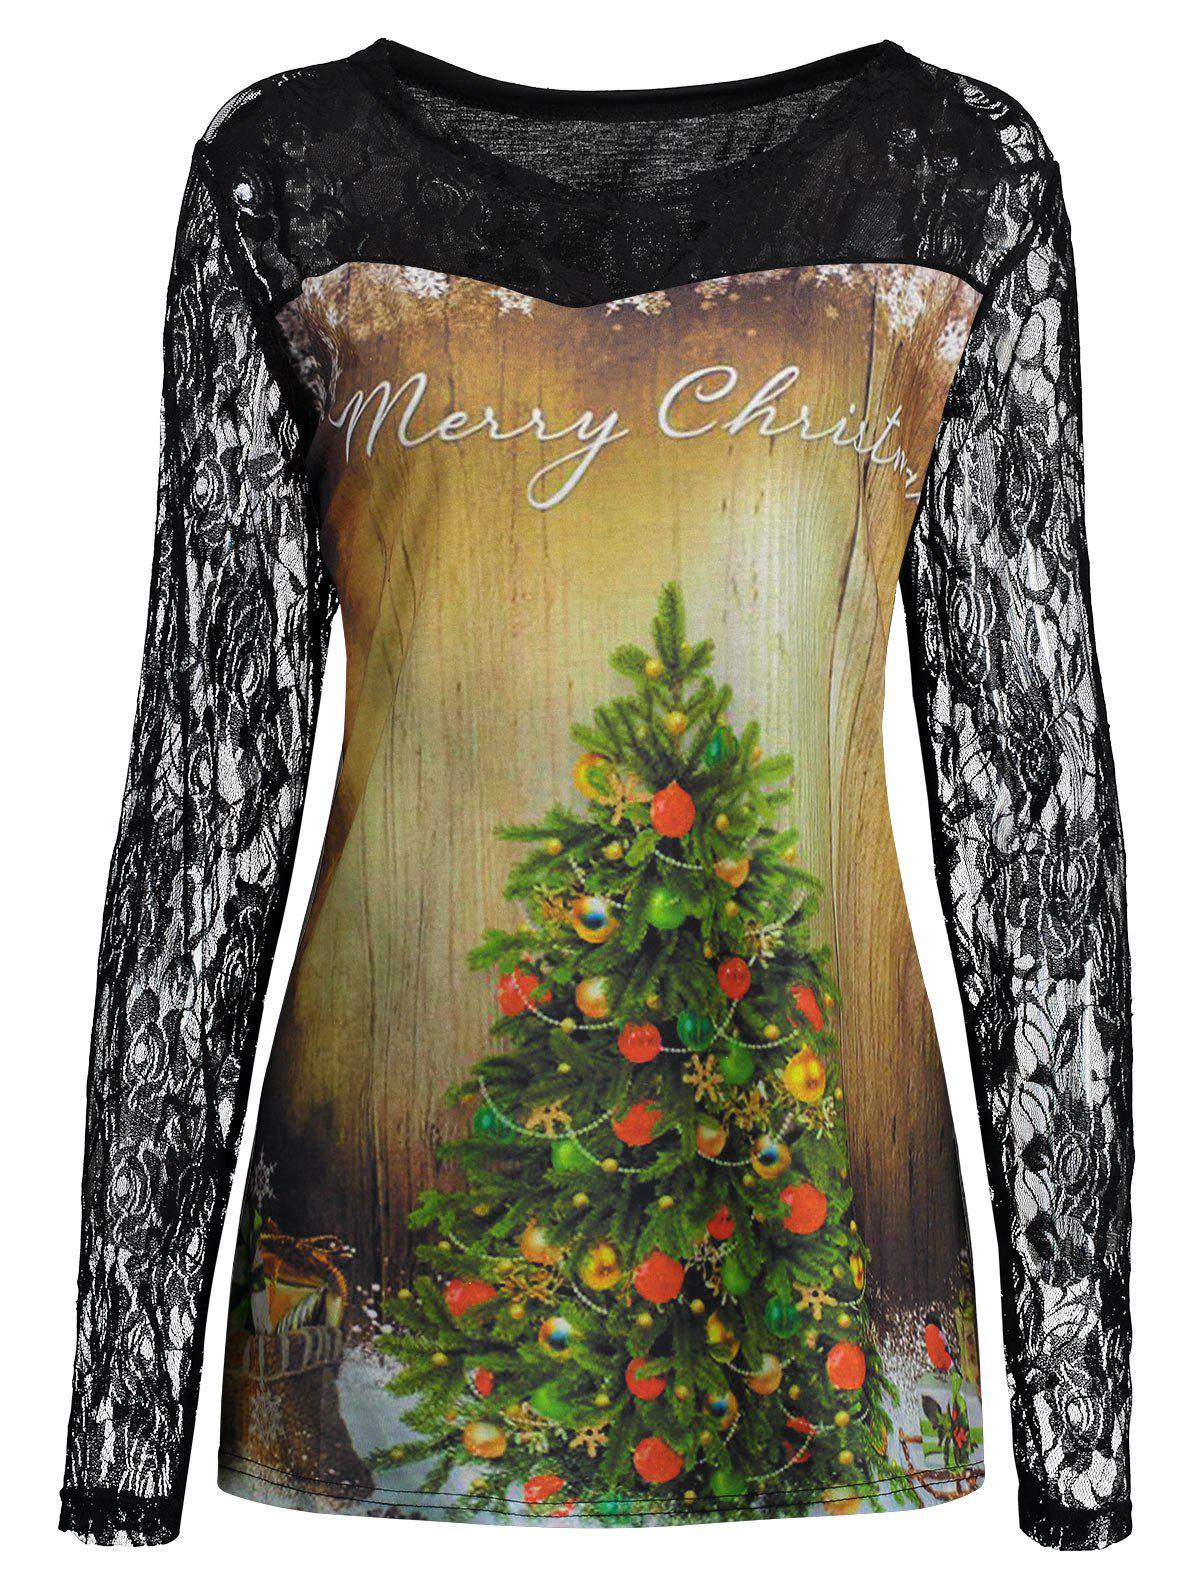 Plus Size Lace Yoke Merry Christmas Tree Print T-shirtWOMEN<br><br>Size: XL; Color: BLACK; Material: Cotton,Polyester; Shirt Length: Regular; Sleeve Length: Full; Collar: Round Neck; Style: Fashion; Season: Fall; Embellishment: Lace; Pattern Type: Letter,Plant; Weight: 0.3500kg; Package Contents: 1 x T-shirt;